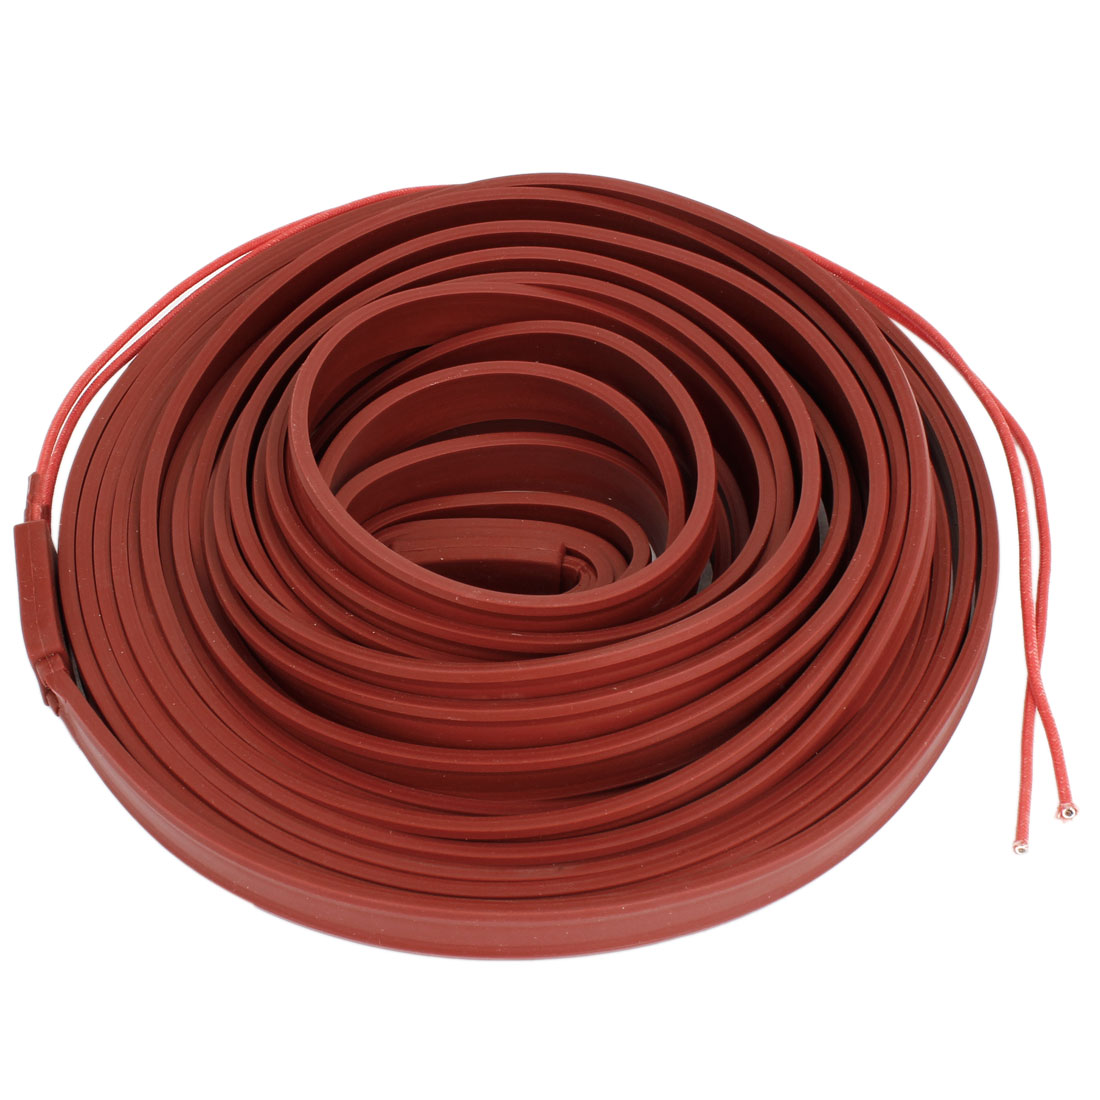 Brick Red Pipeline Waterproof Heating Cable 220V 10M x 15mm